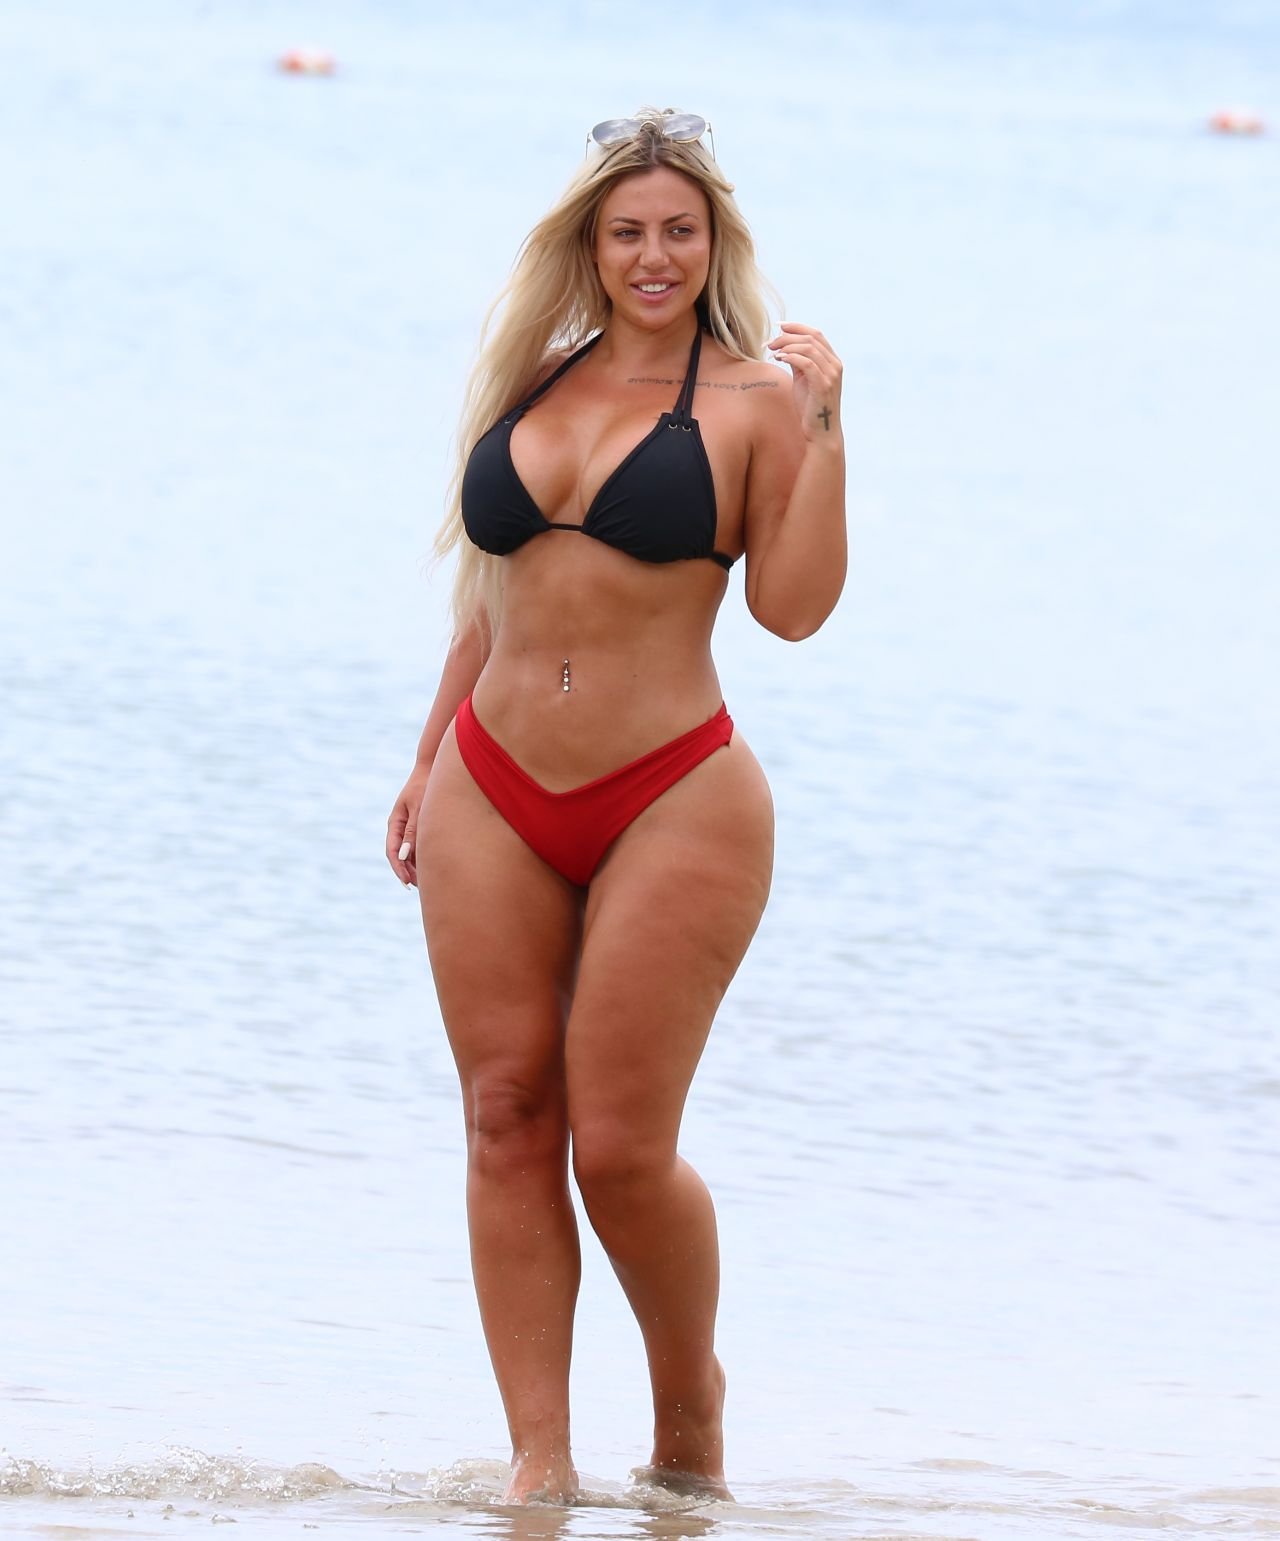 holly-hagan-in-bikini-at-the-beach-in-st-lucia-05-16-2018-11.jpg